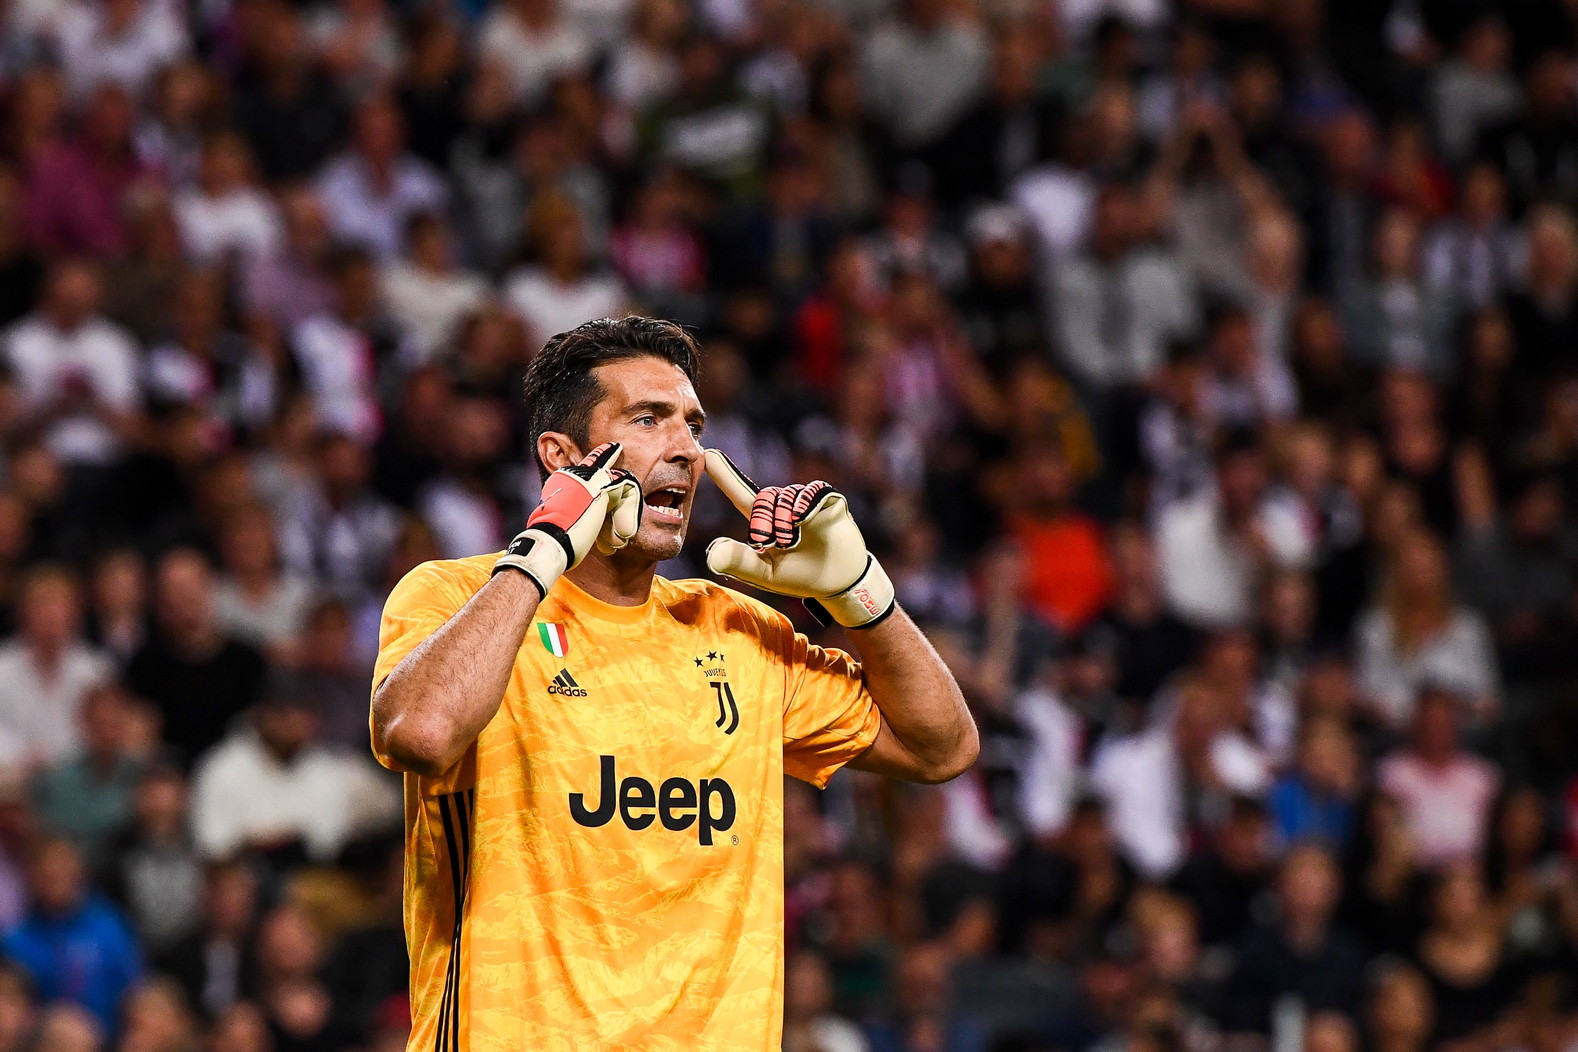 1. GIANLUIGI BUFFON - 902 presenze